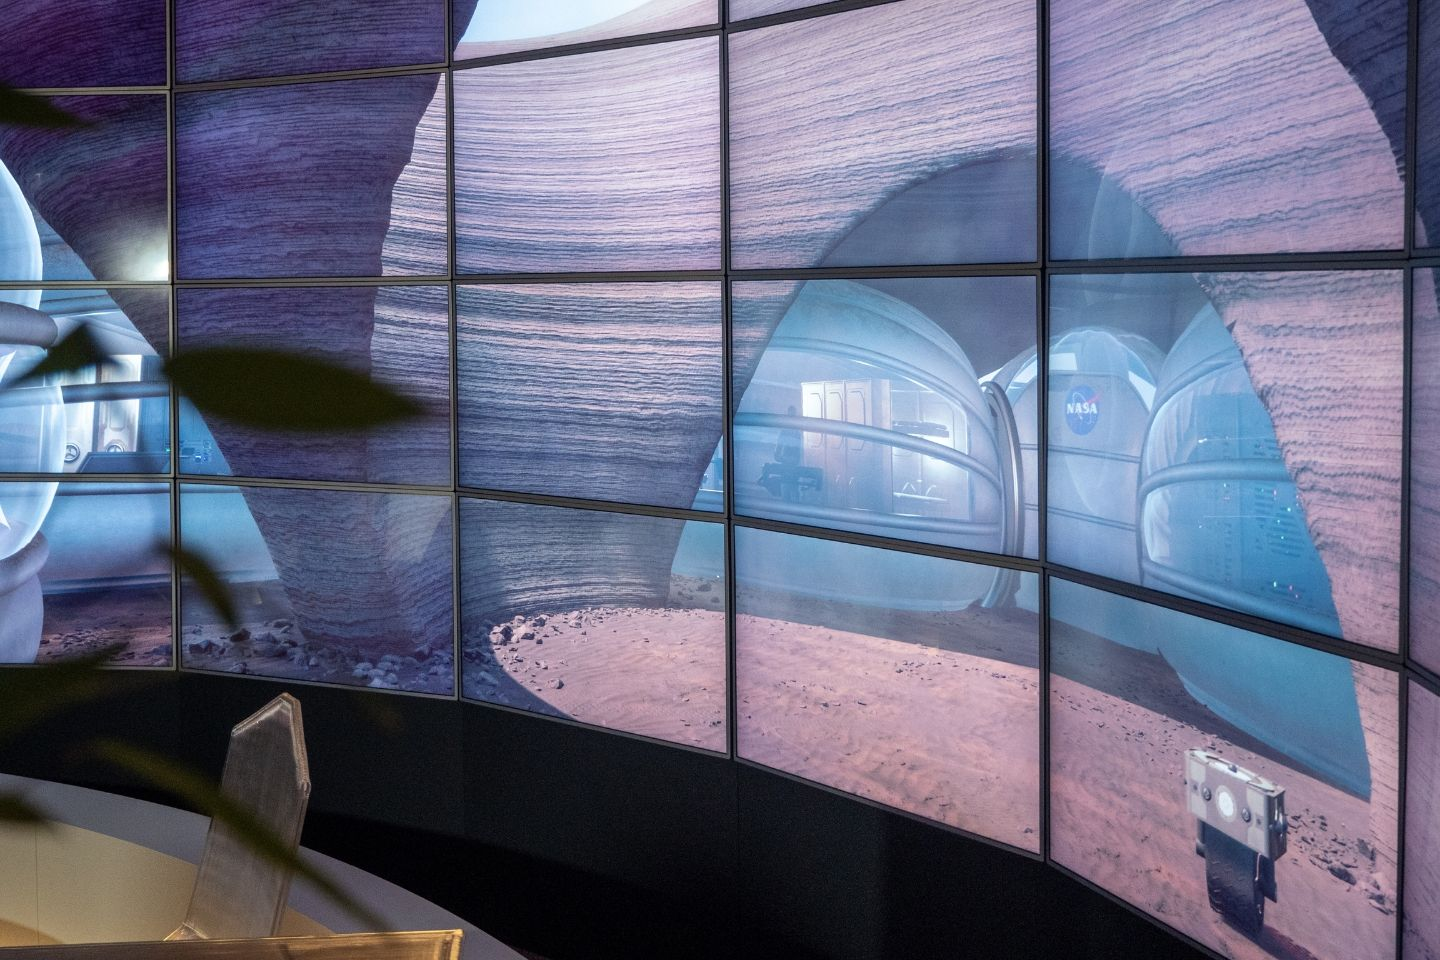 Mars, Exhibition, Design Museum, London, What to do in london, Space